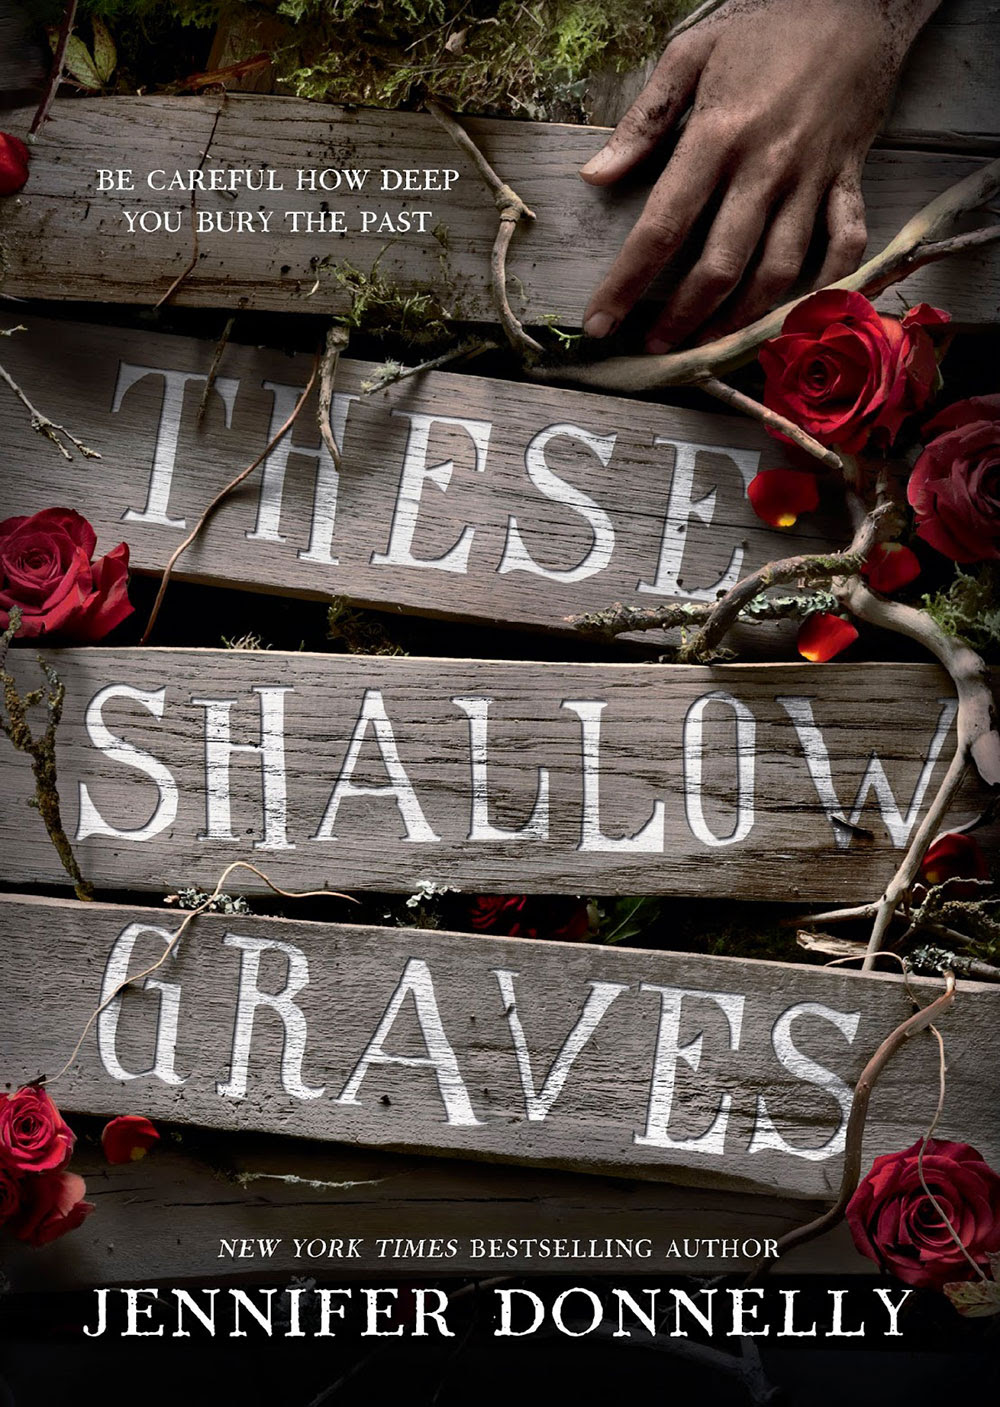 These hallow graves